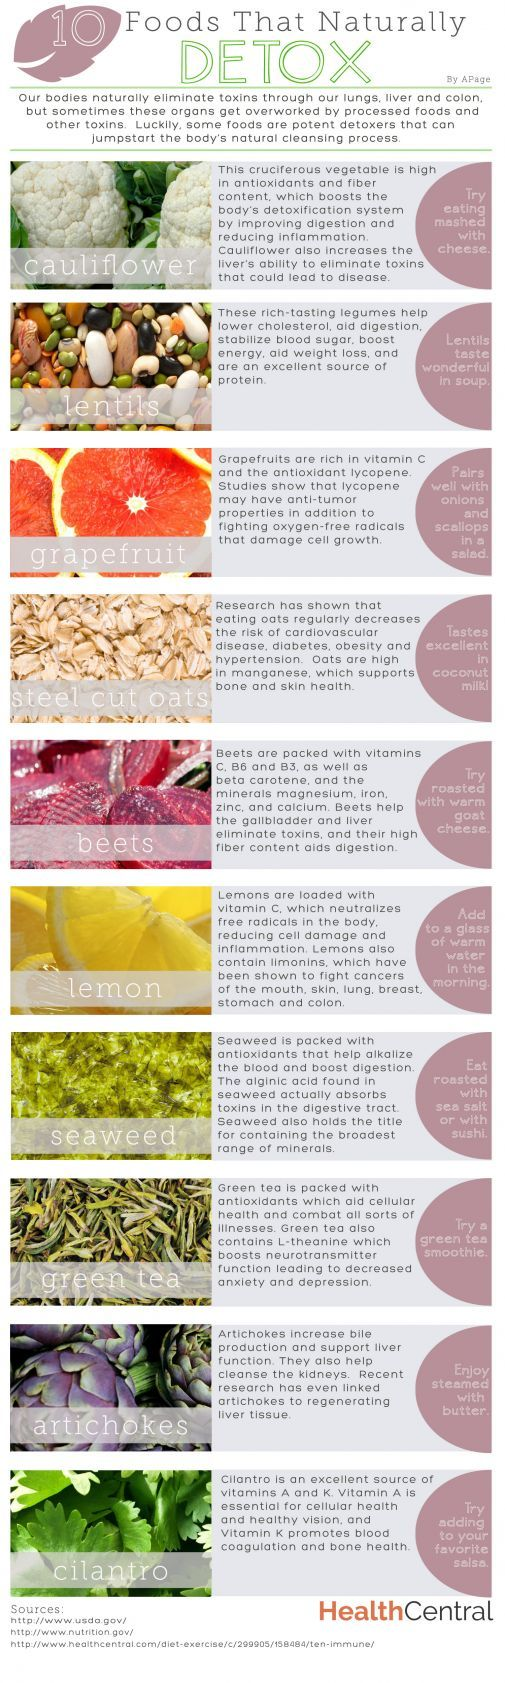 Check out this health #infographic that explains the 10 foods that naturally #detox. Foods like beets, cauliflower, grapefruit, steel cut oats, lemon, seaweed, green tea, artichokes, cilantro, lemons and lentils are have properties that can help your body take care of itself. Read more here:  http://www.healthcentral.com/dailydose/cf/2014/03/3/10_foods_that_naturally_detox?ap=2012